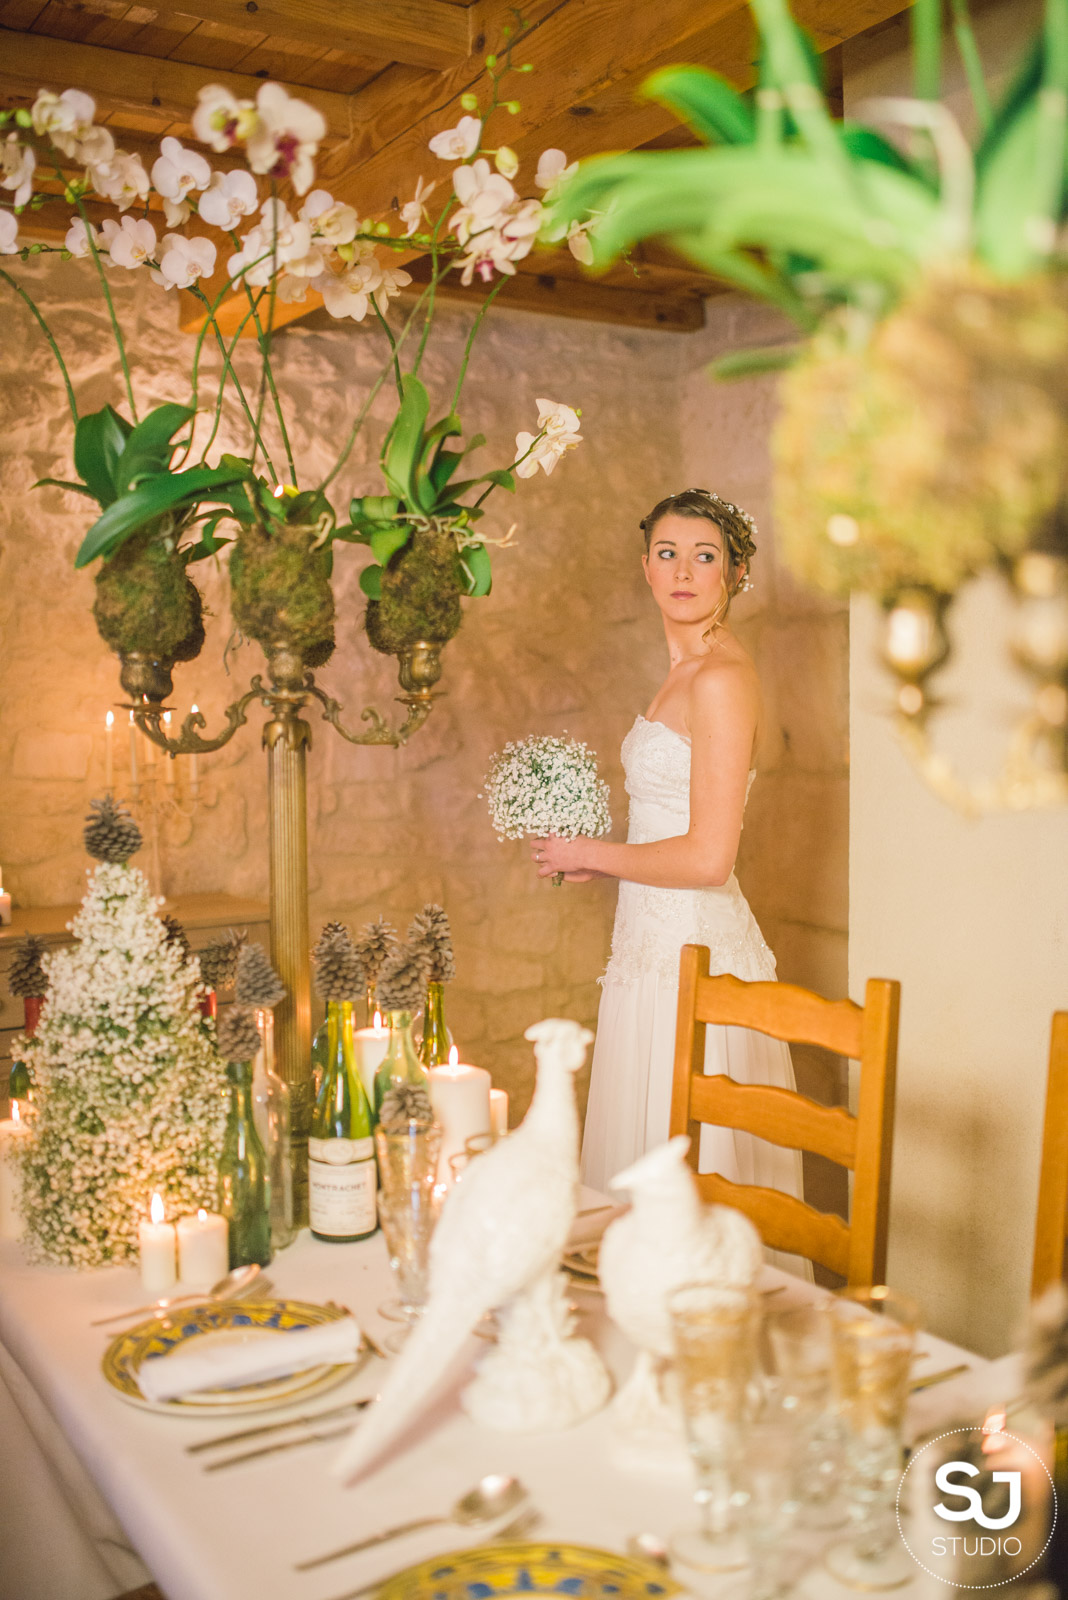 06 - Wedding Photographer South France Provence